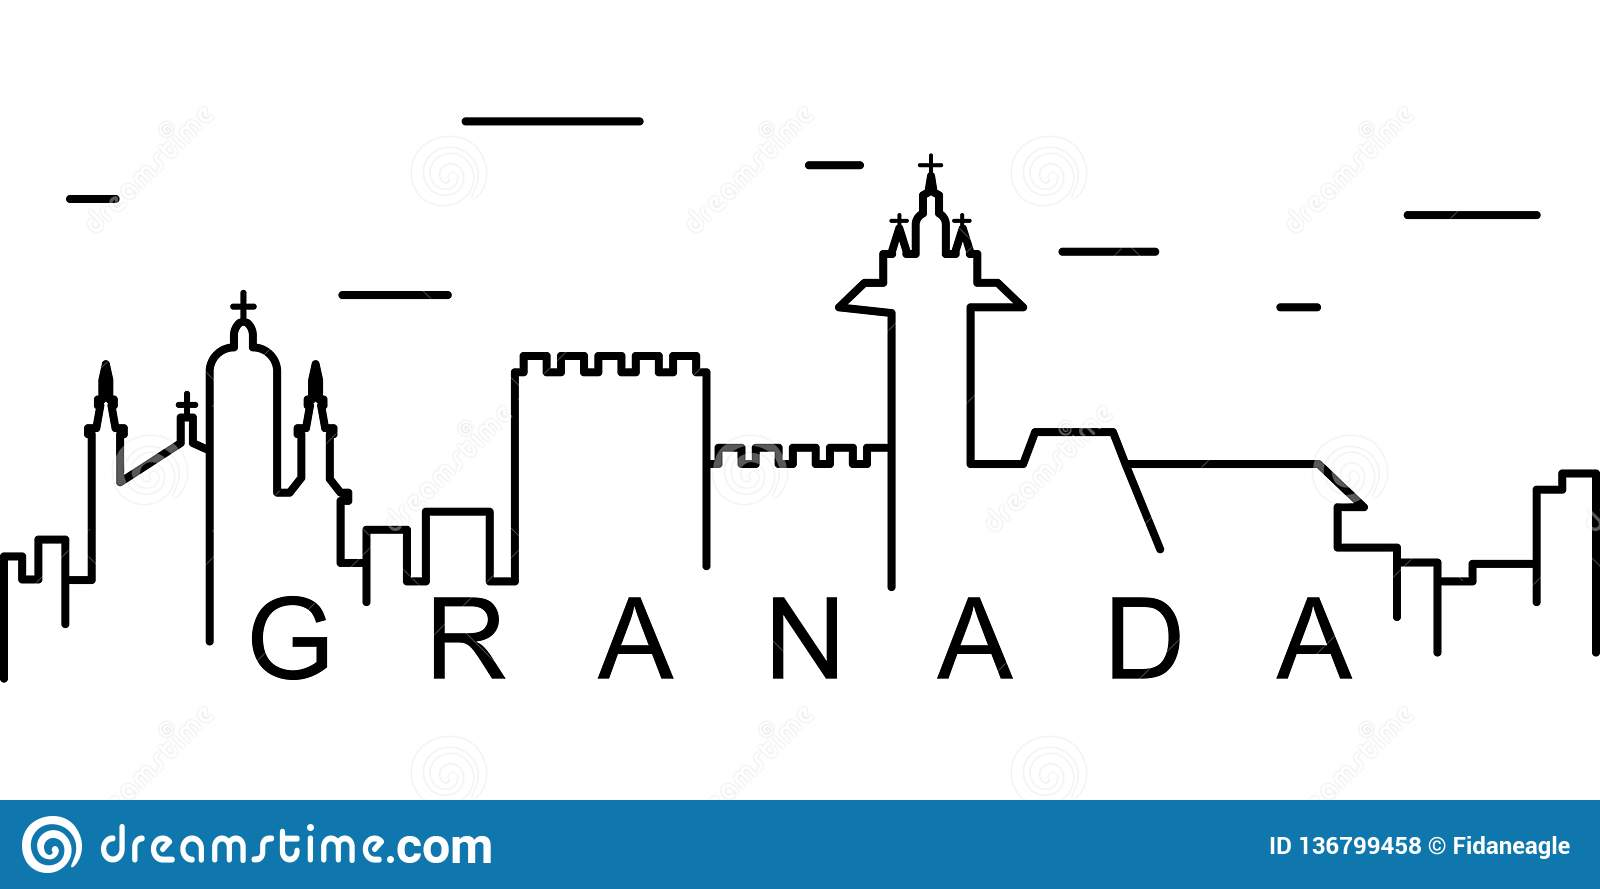 Granada outline icon. Can be used for web, logo, mobile app, UI, UX